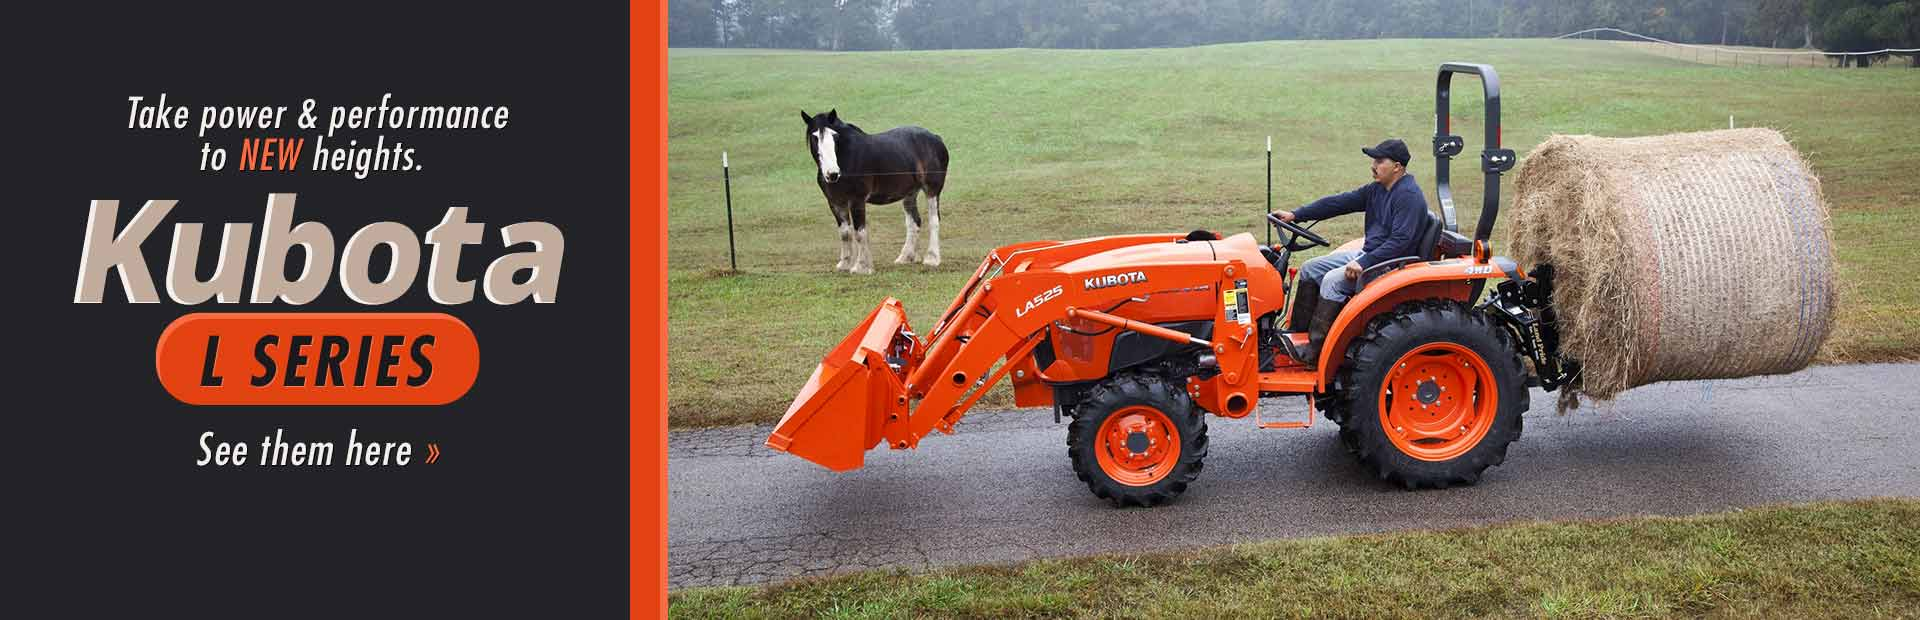 Kubota L Series Tractors: Click here to view the models.